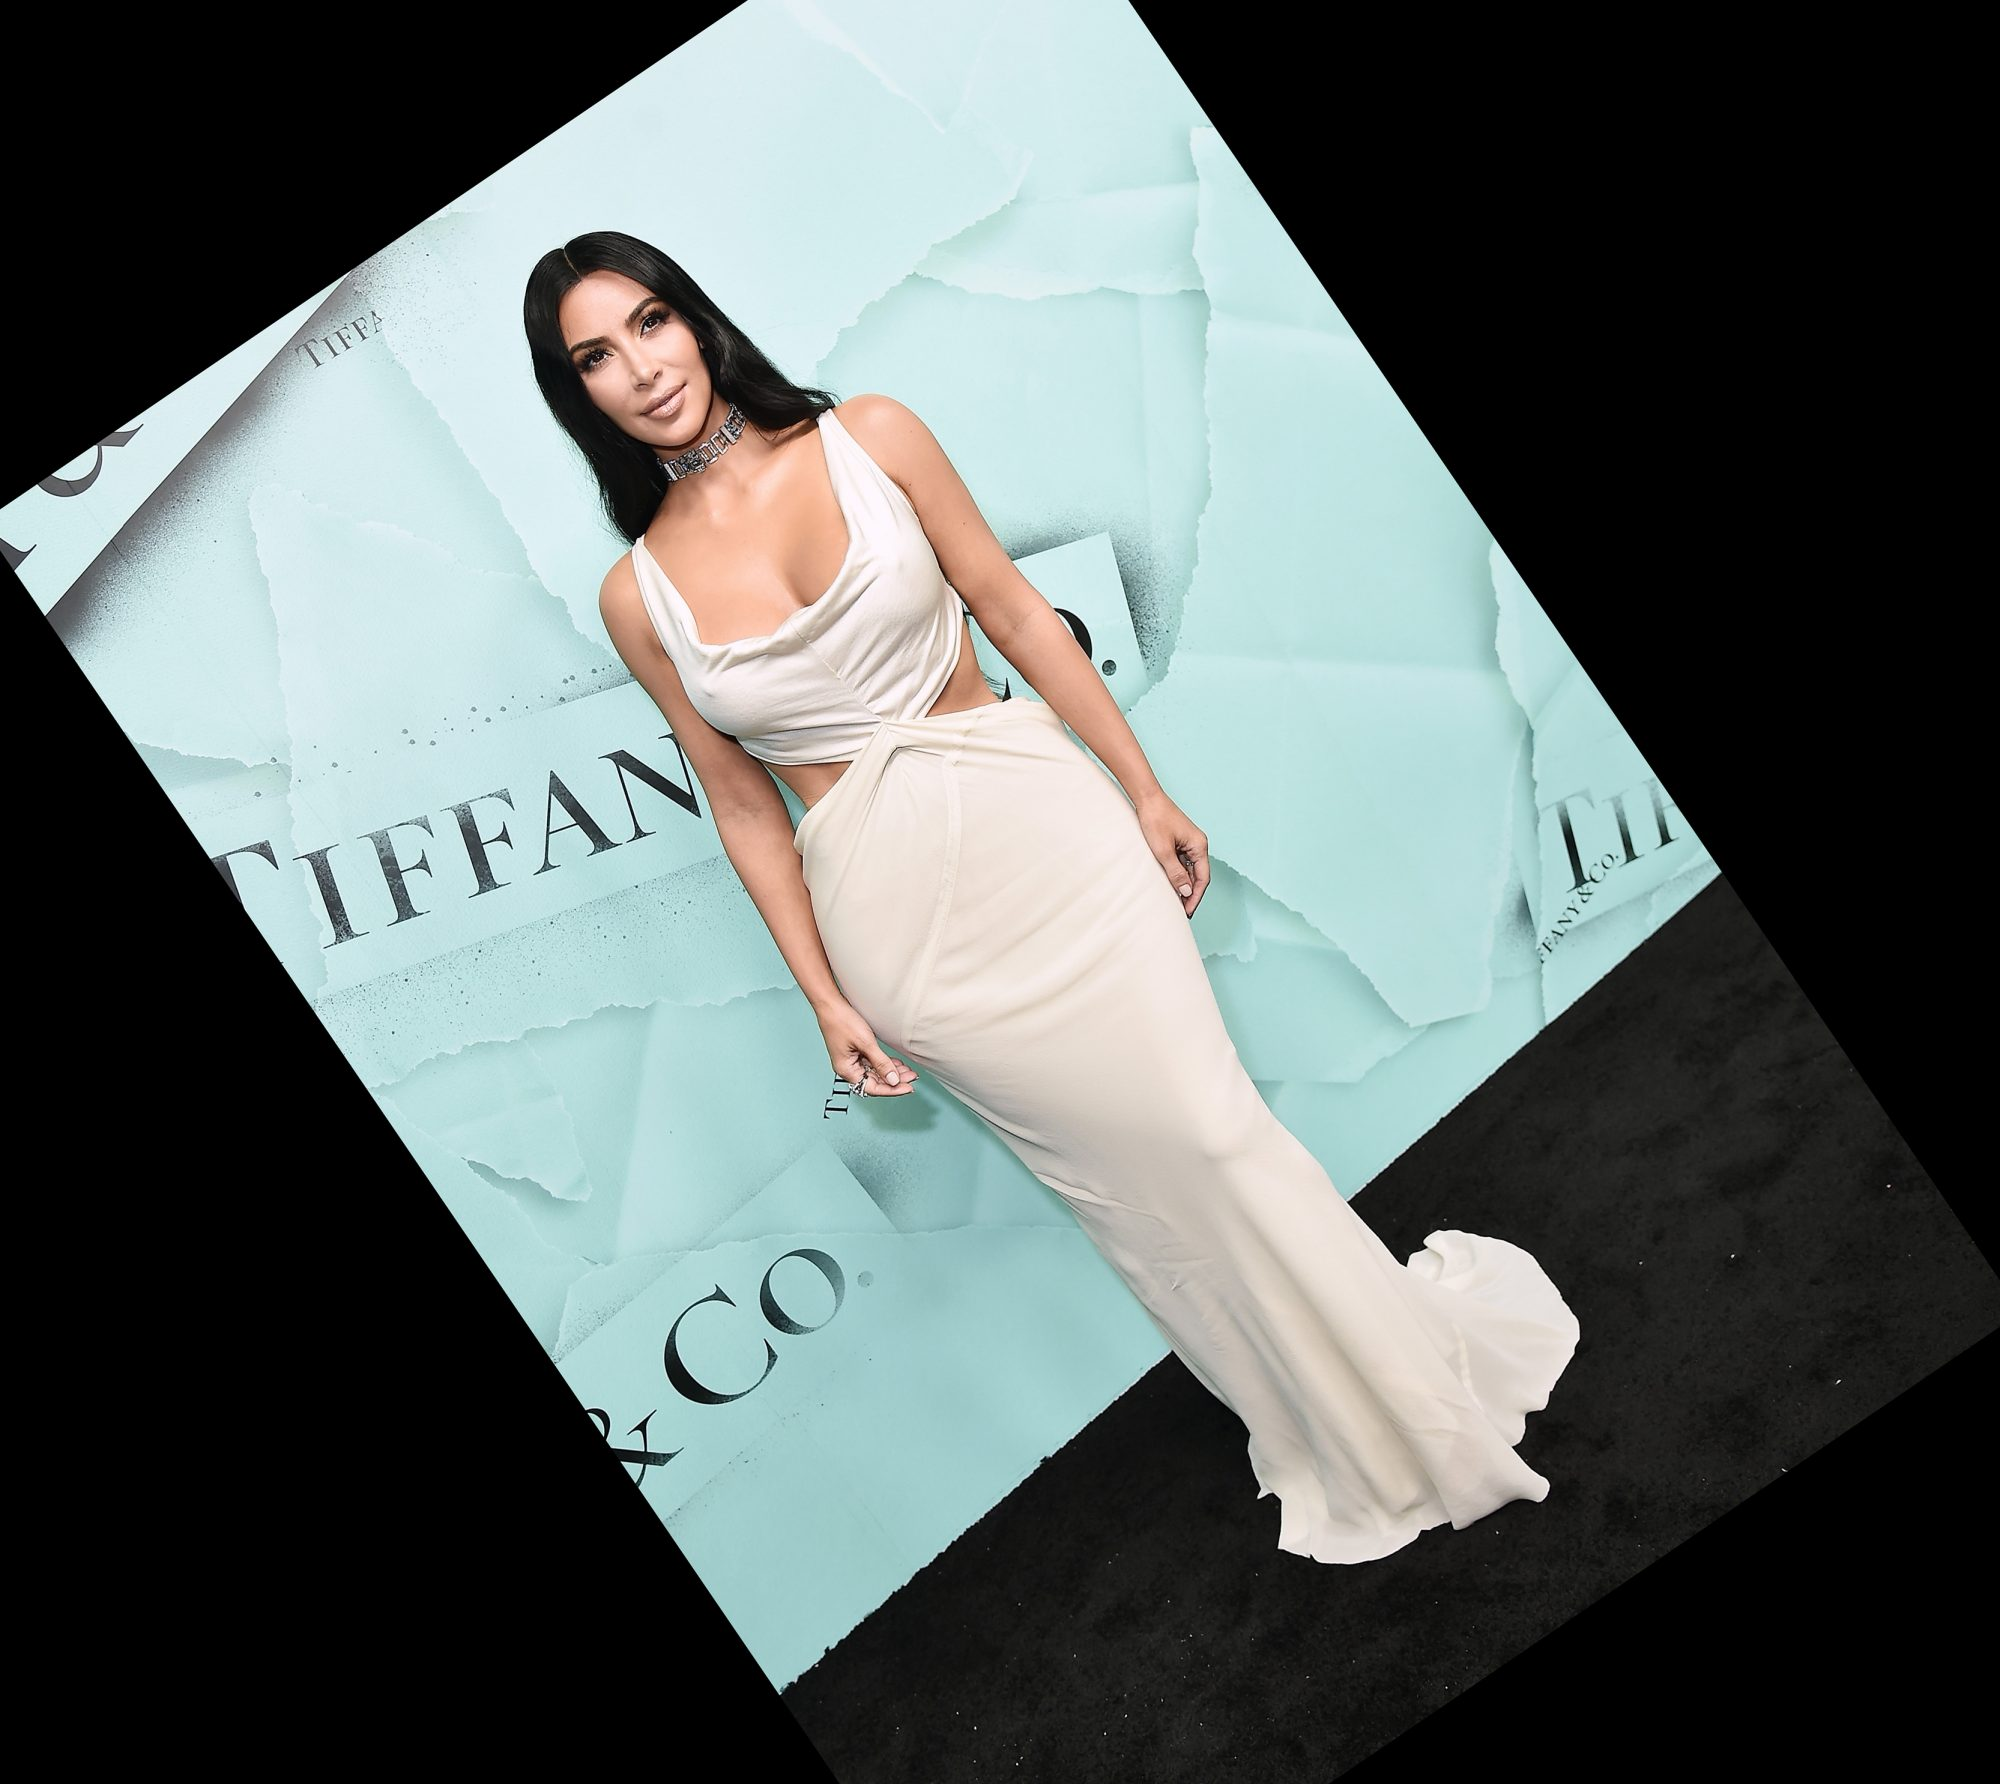 Kim Kardashian's New Fragrance Campaign Claims to Be Body Positive—but Is It Really?